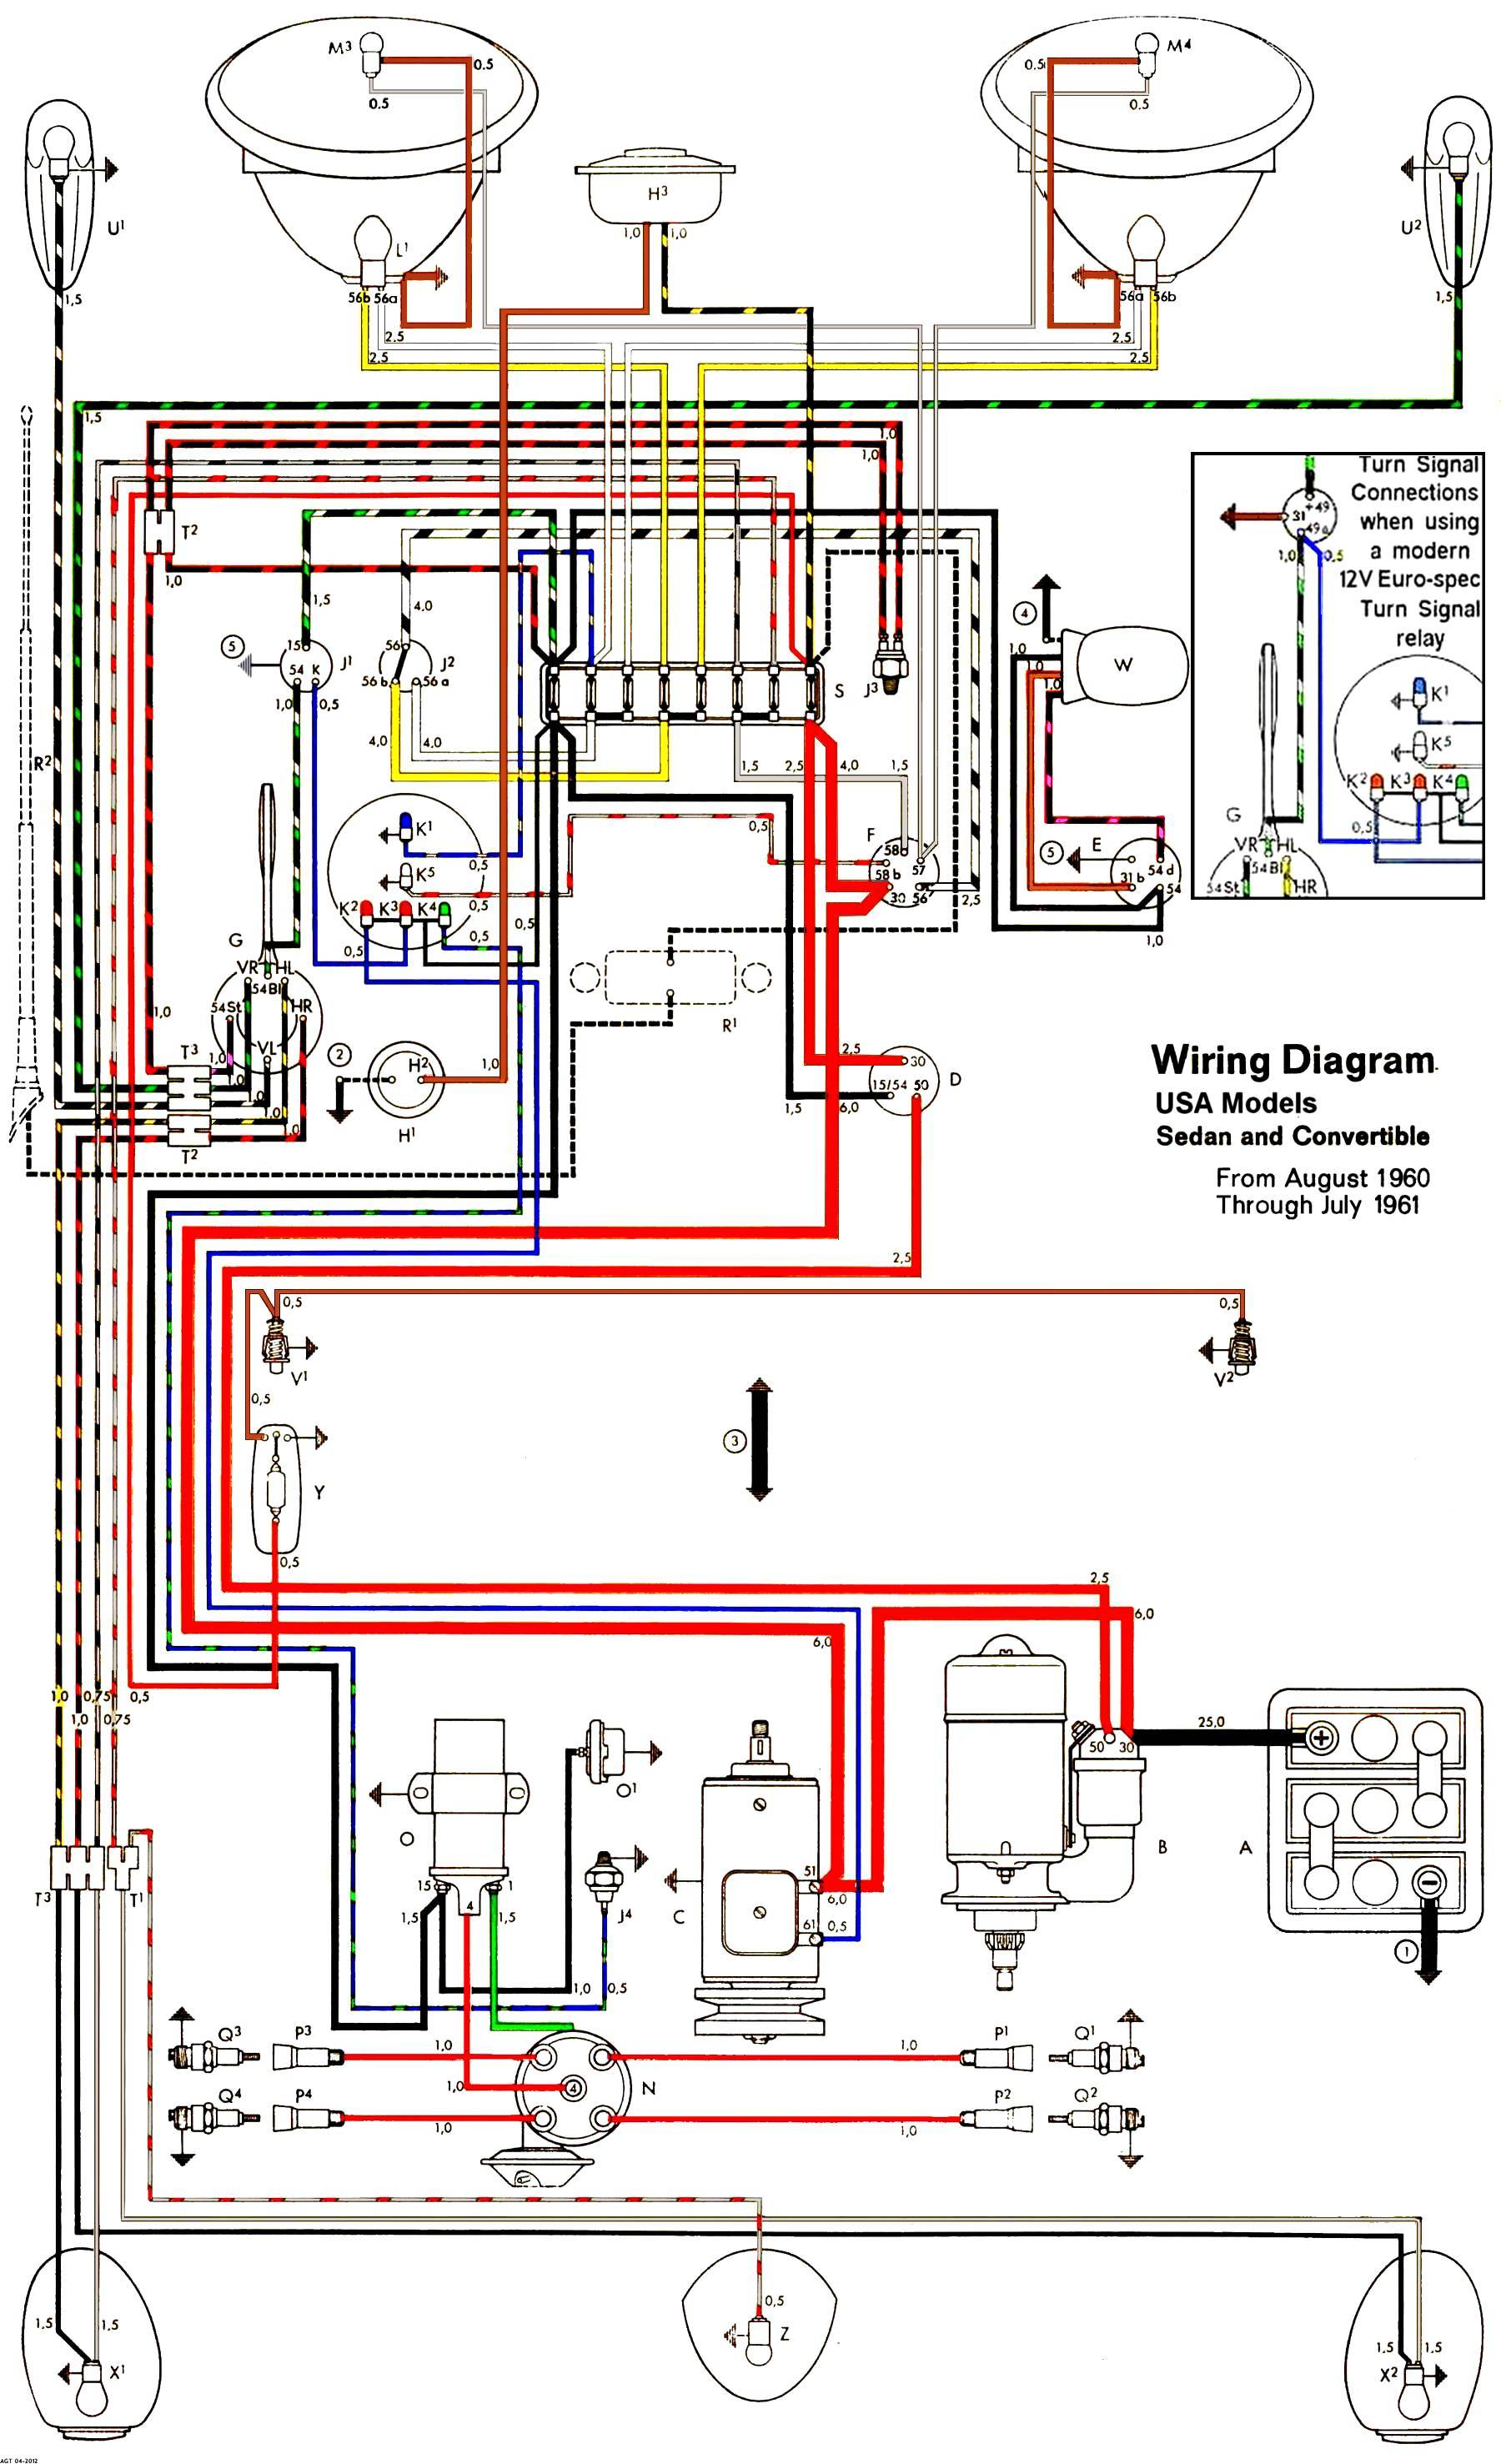 T1 Wire Diagram | Wiring Diagram  Ford Contour Ke Light Wiring Diagram on